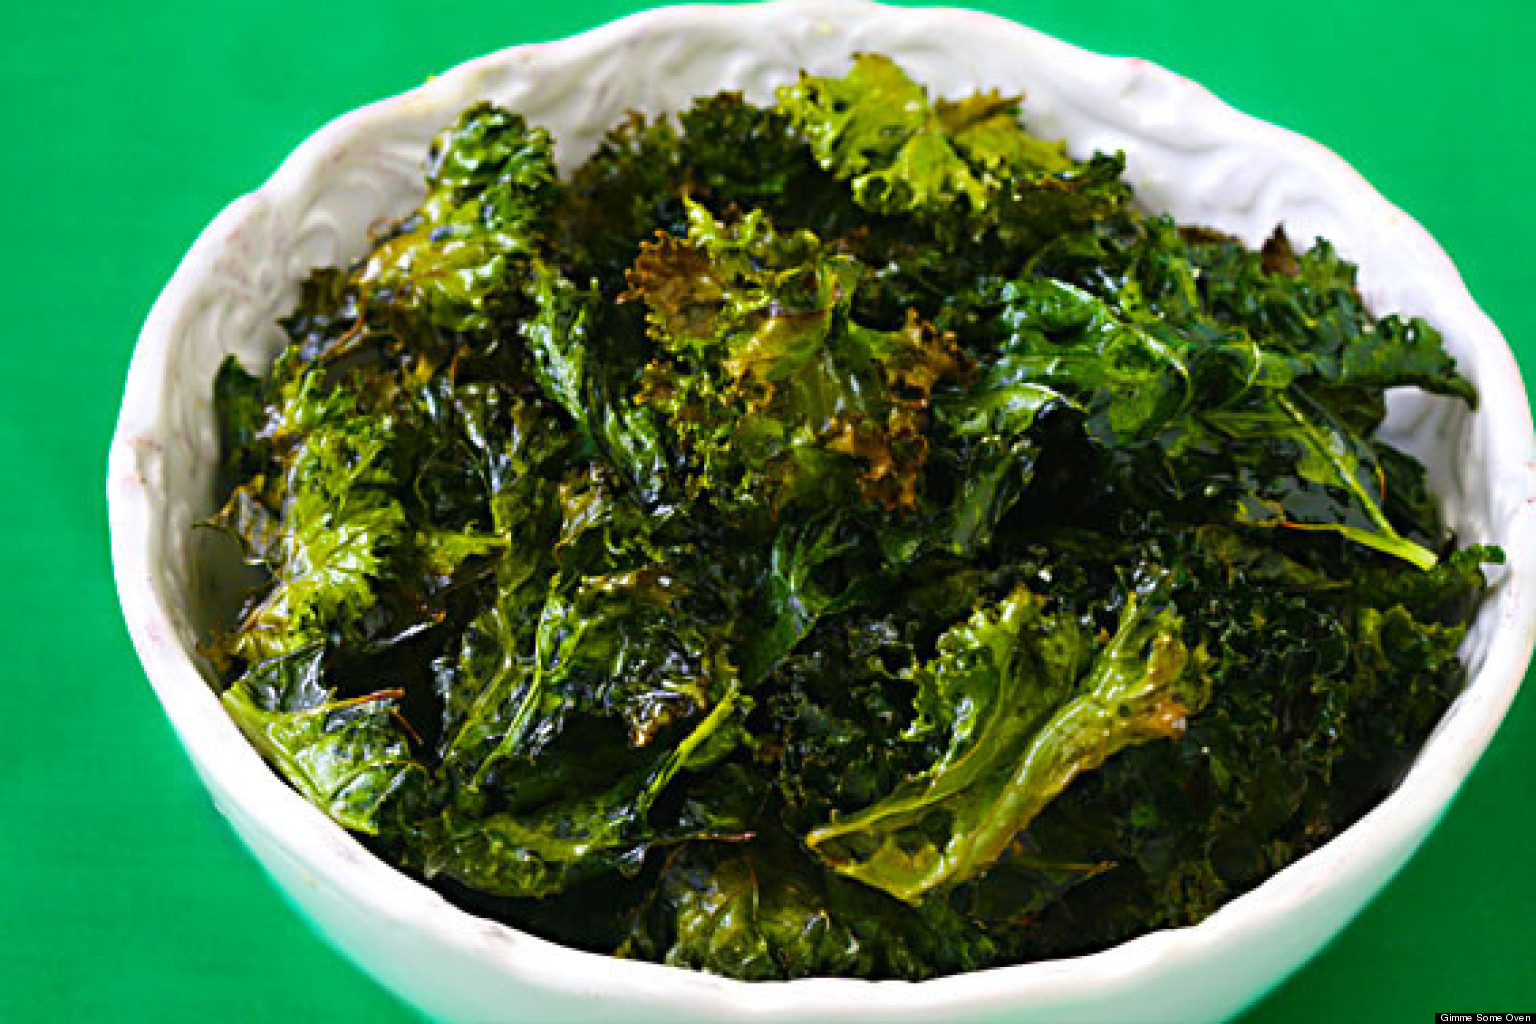 Kale Chips Recipe: Bake Your Own, Trust Us